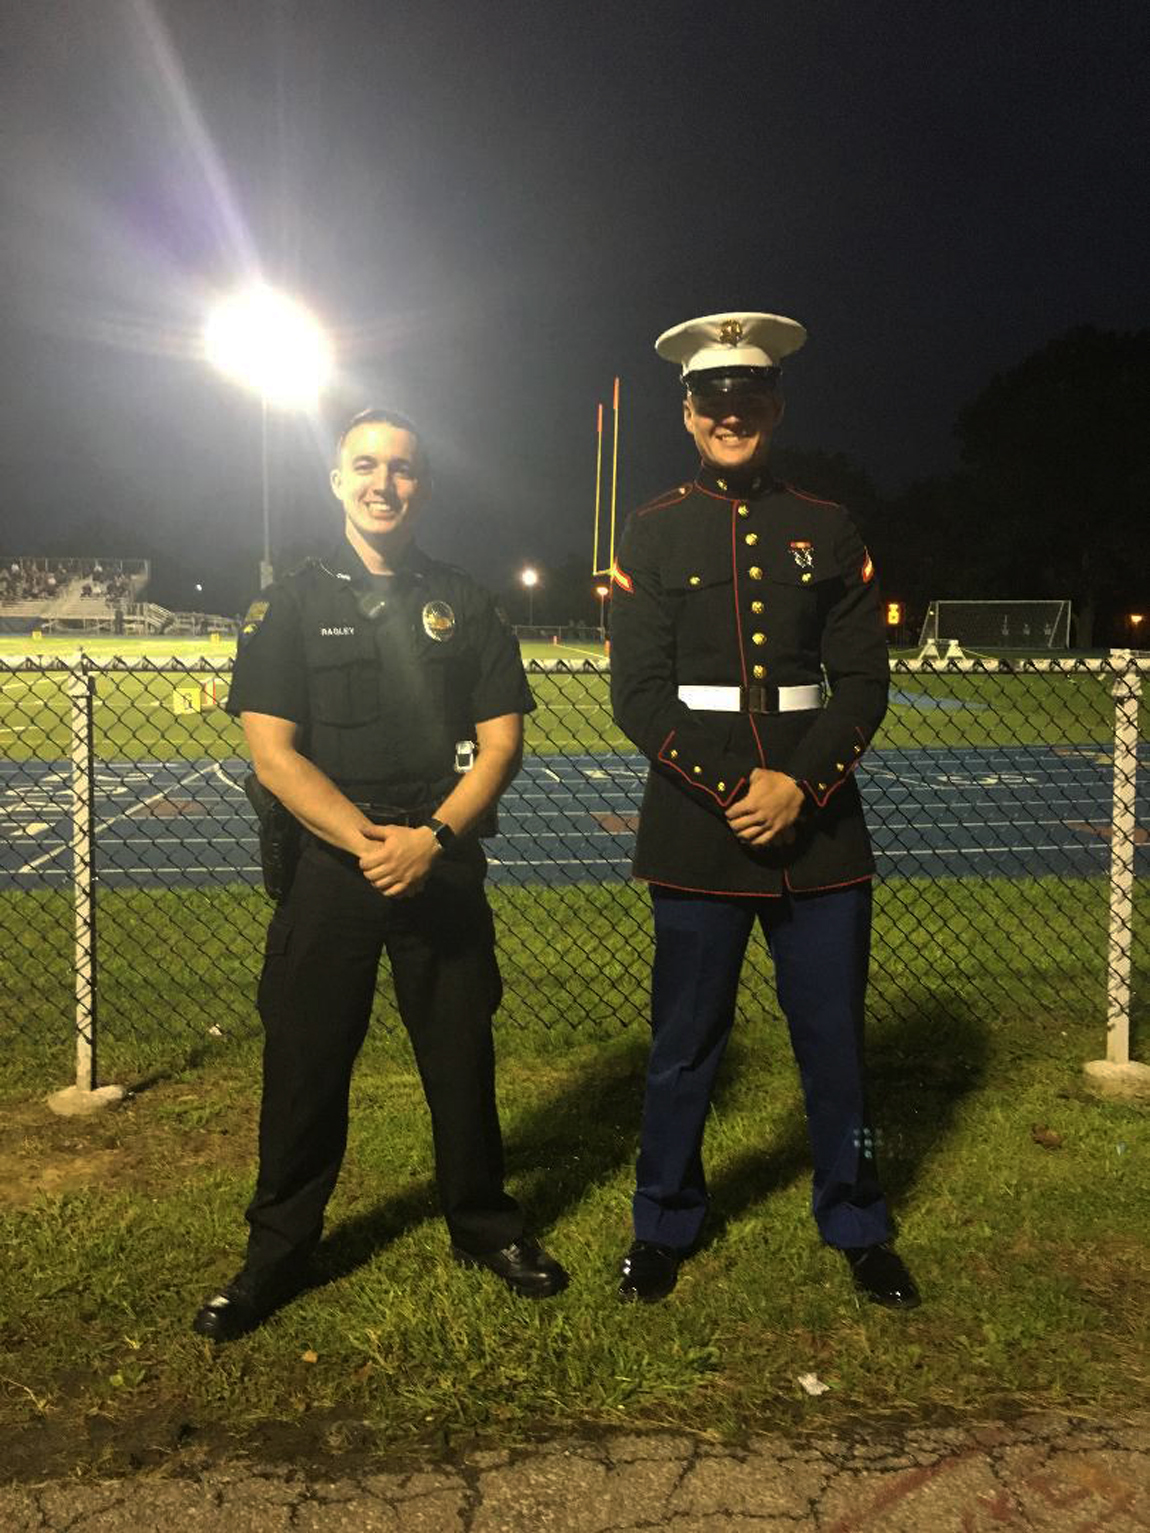 Corbin on duty for CUP Police Department and Thomas Wurster USMC. The Clarion Area Grads at a Bobcats football game.